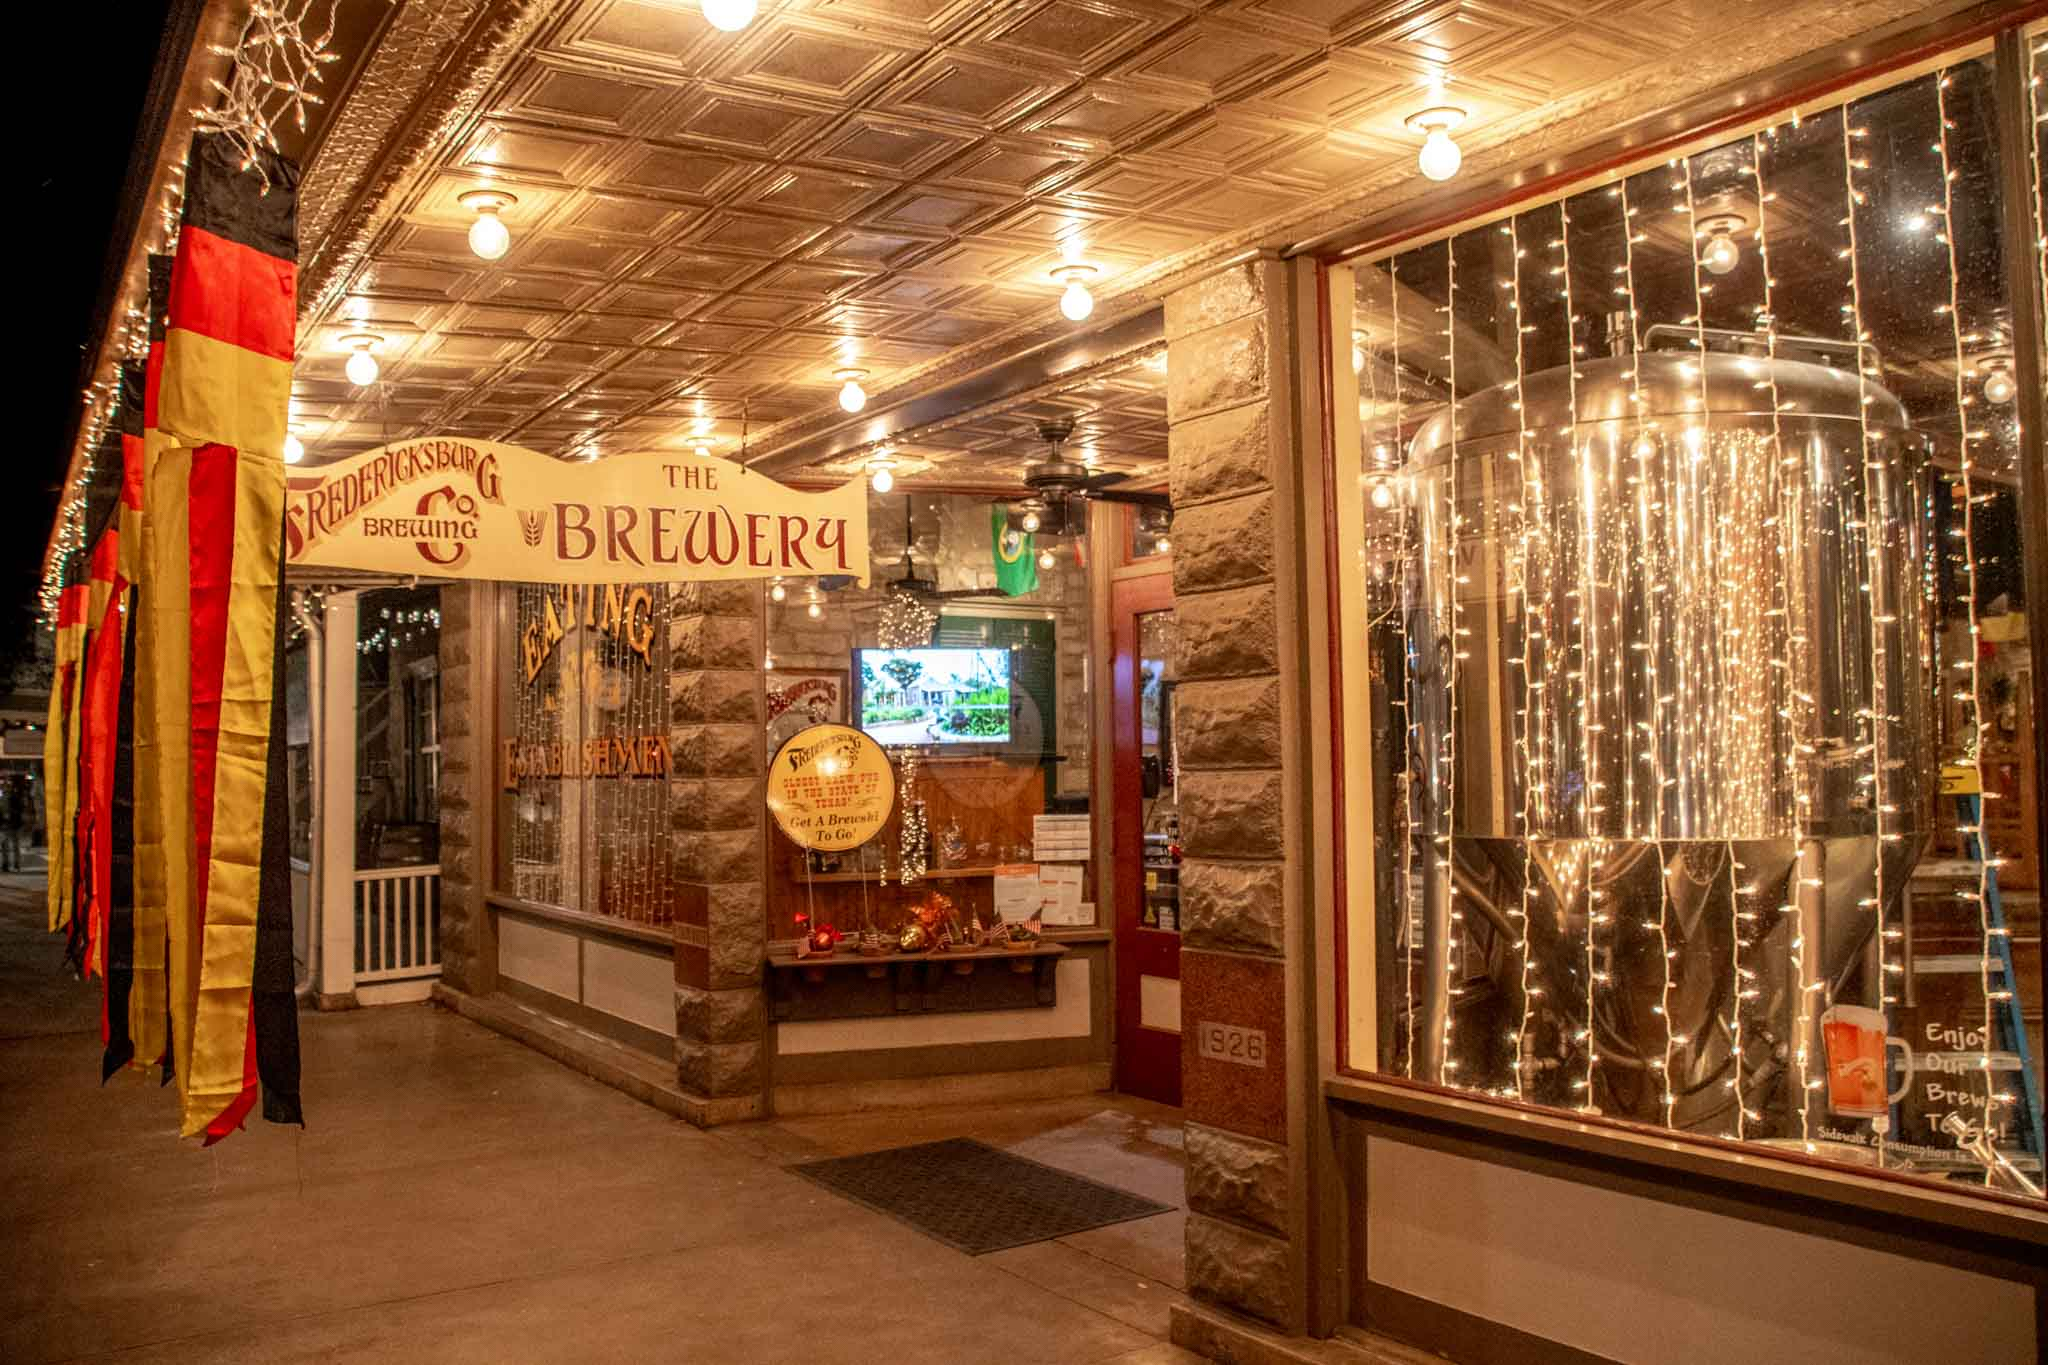 Exterior of the brewery with lights and flags